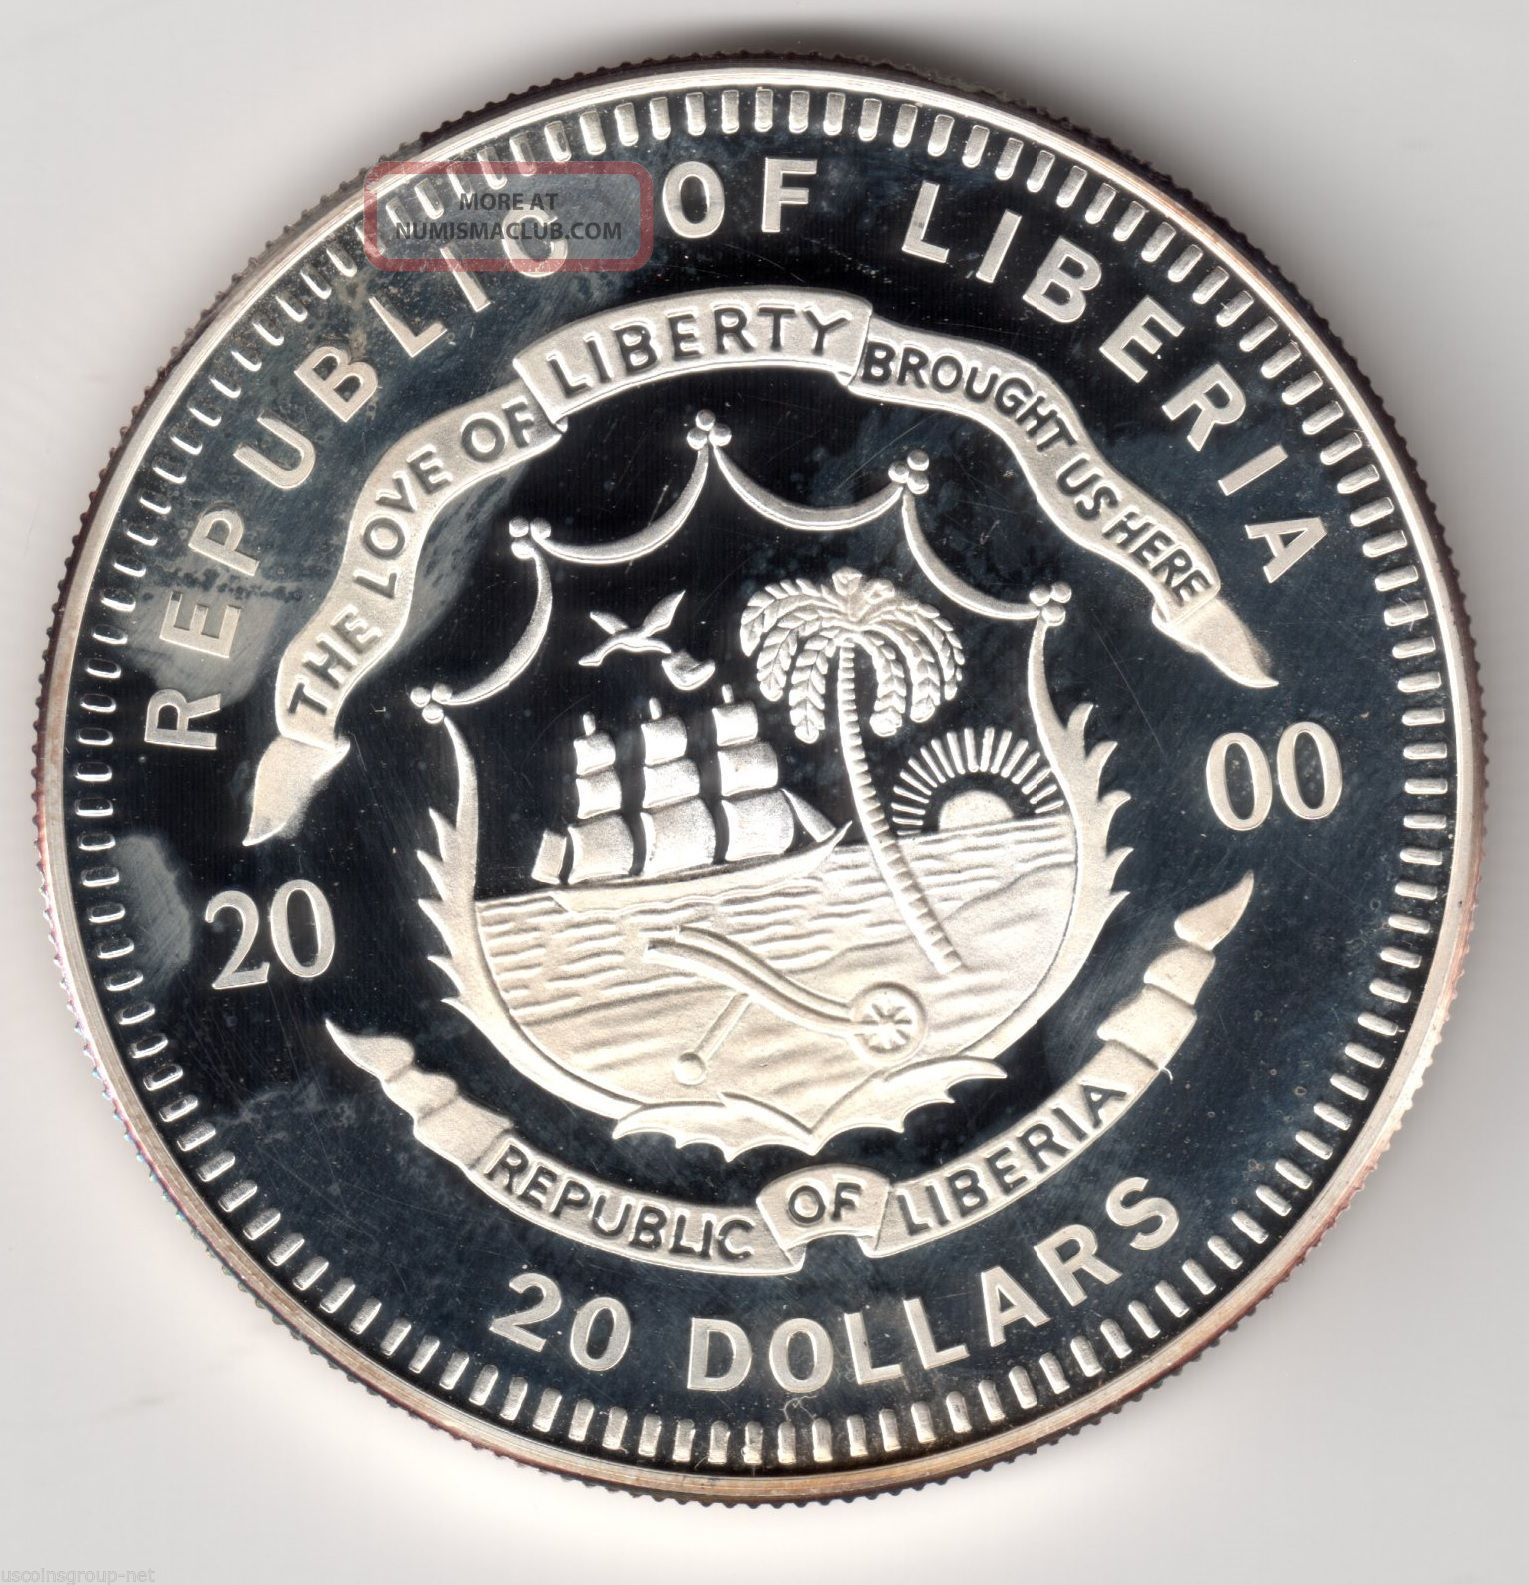 2000 Republic Of Liberia Quot Louisiana Purchase Quot 20 Dollar